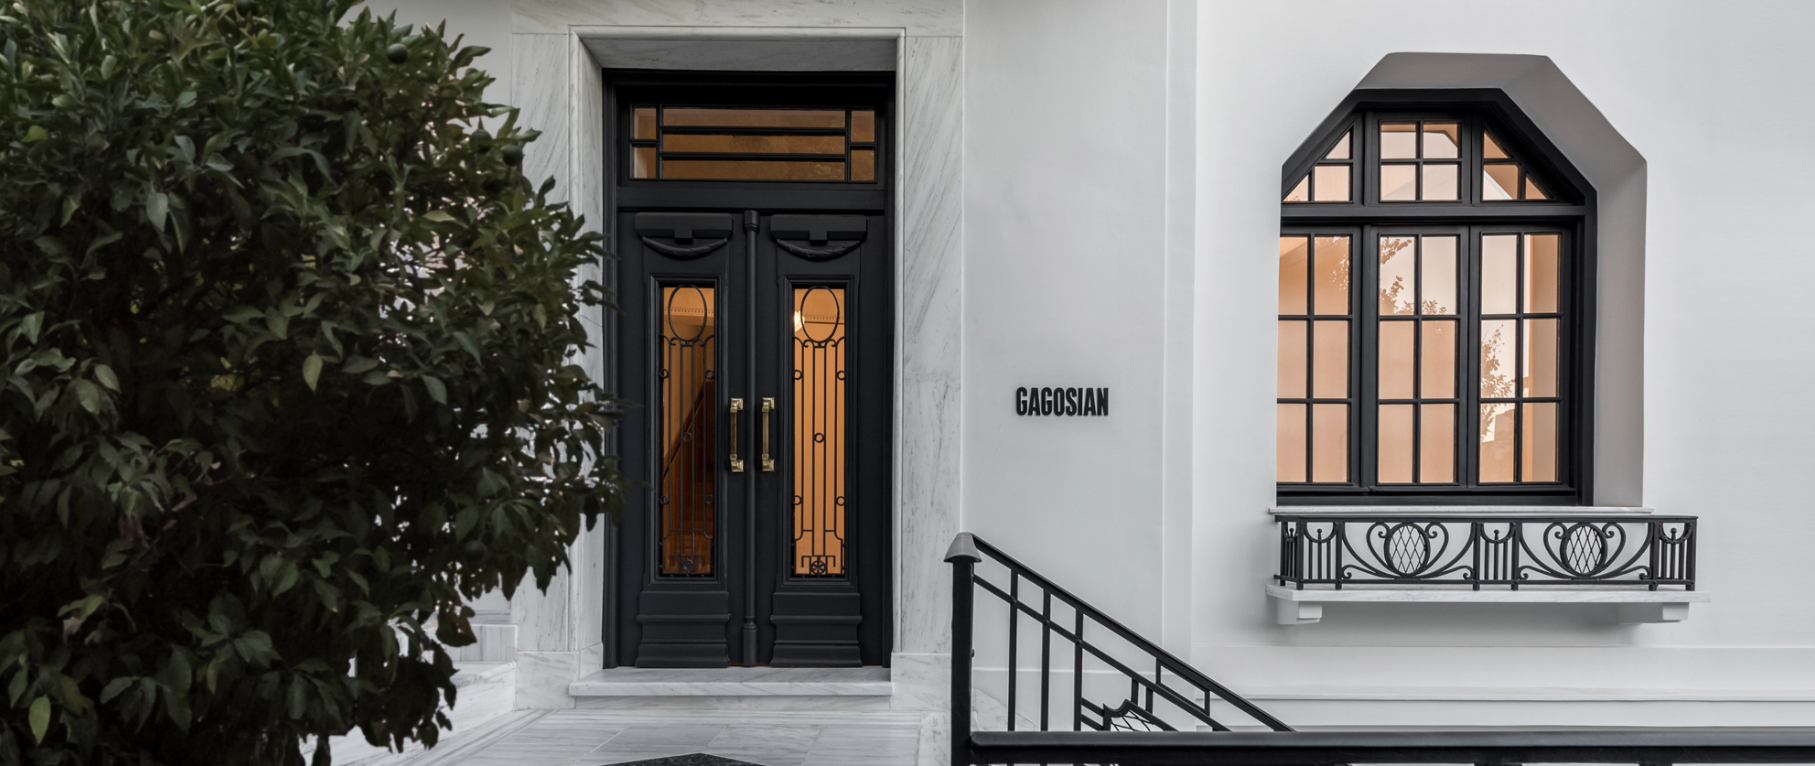 Entrance Gagosian Gallery